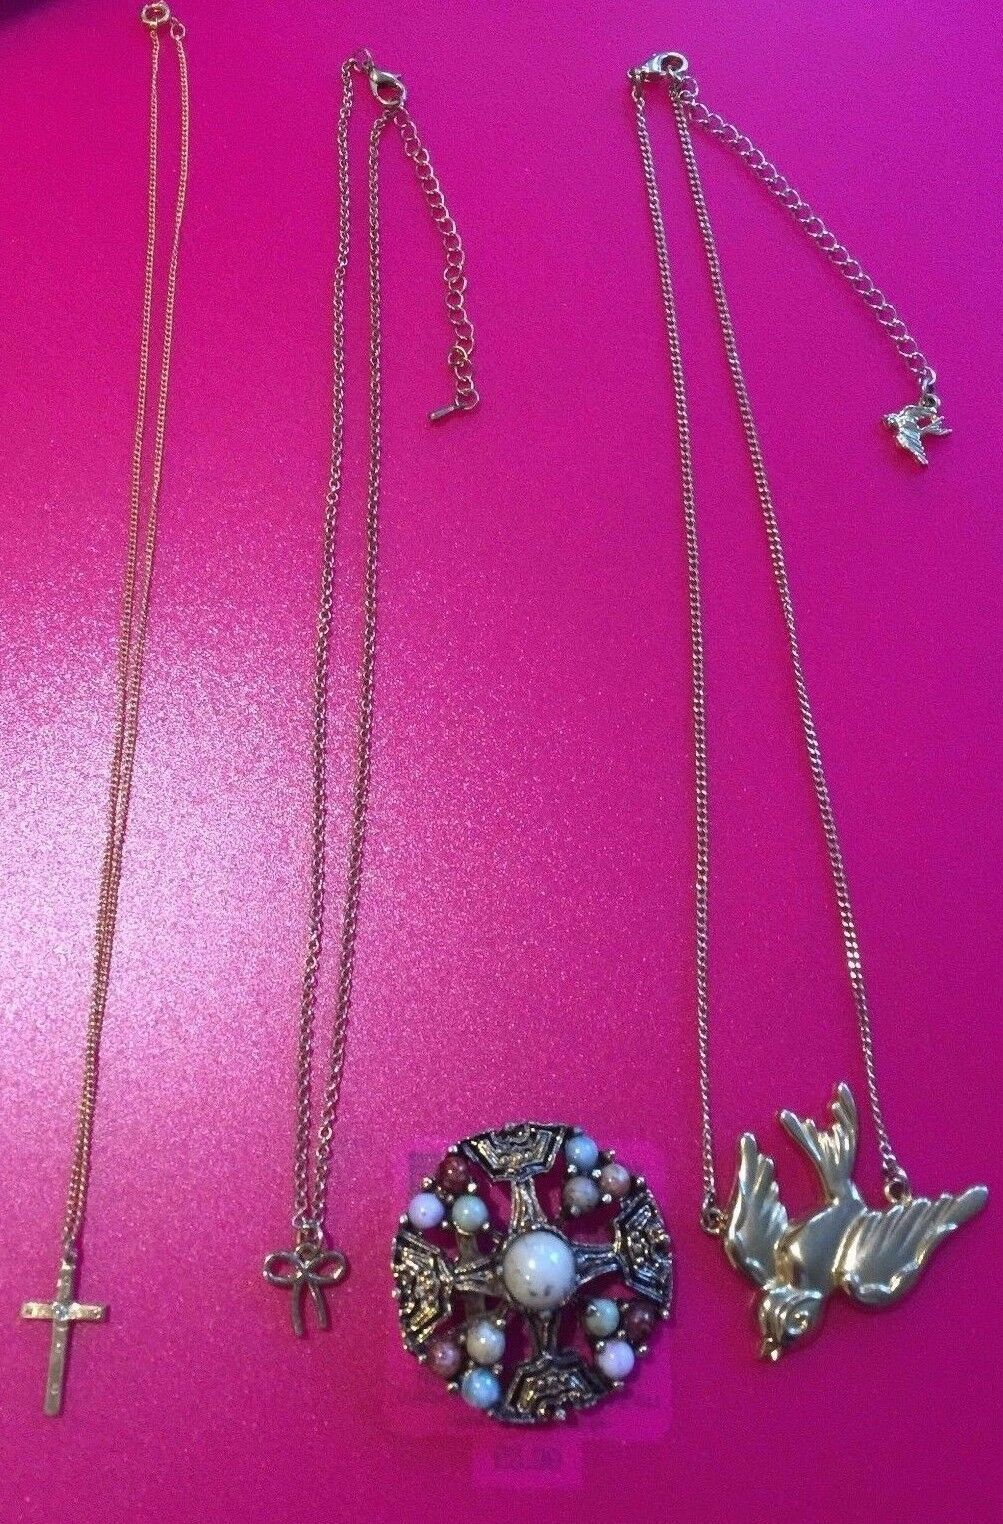 4a566975e7a Job Lot Costume Jewellery Mixed Lot, Chains & Pendants + Brooch. with: